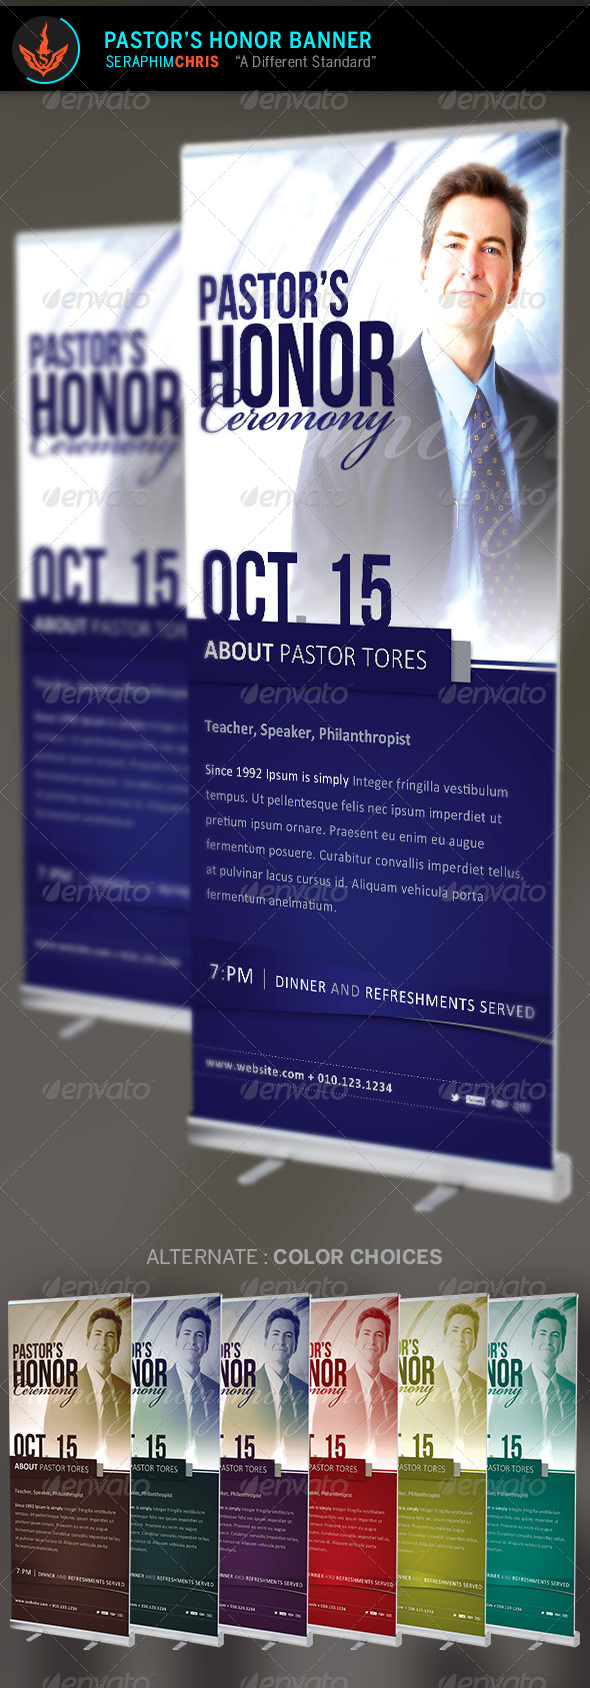 Pastor's Honor: Church Banner Template - Signage Print Templates